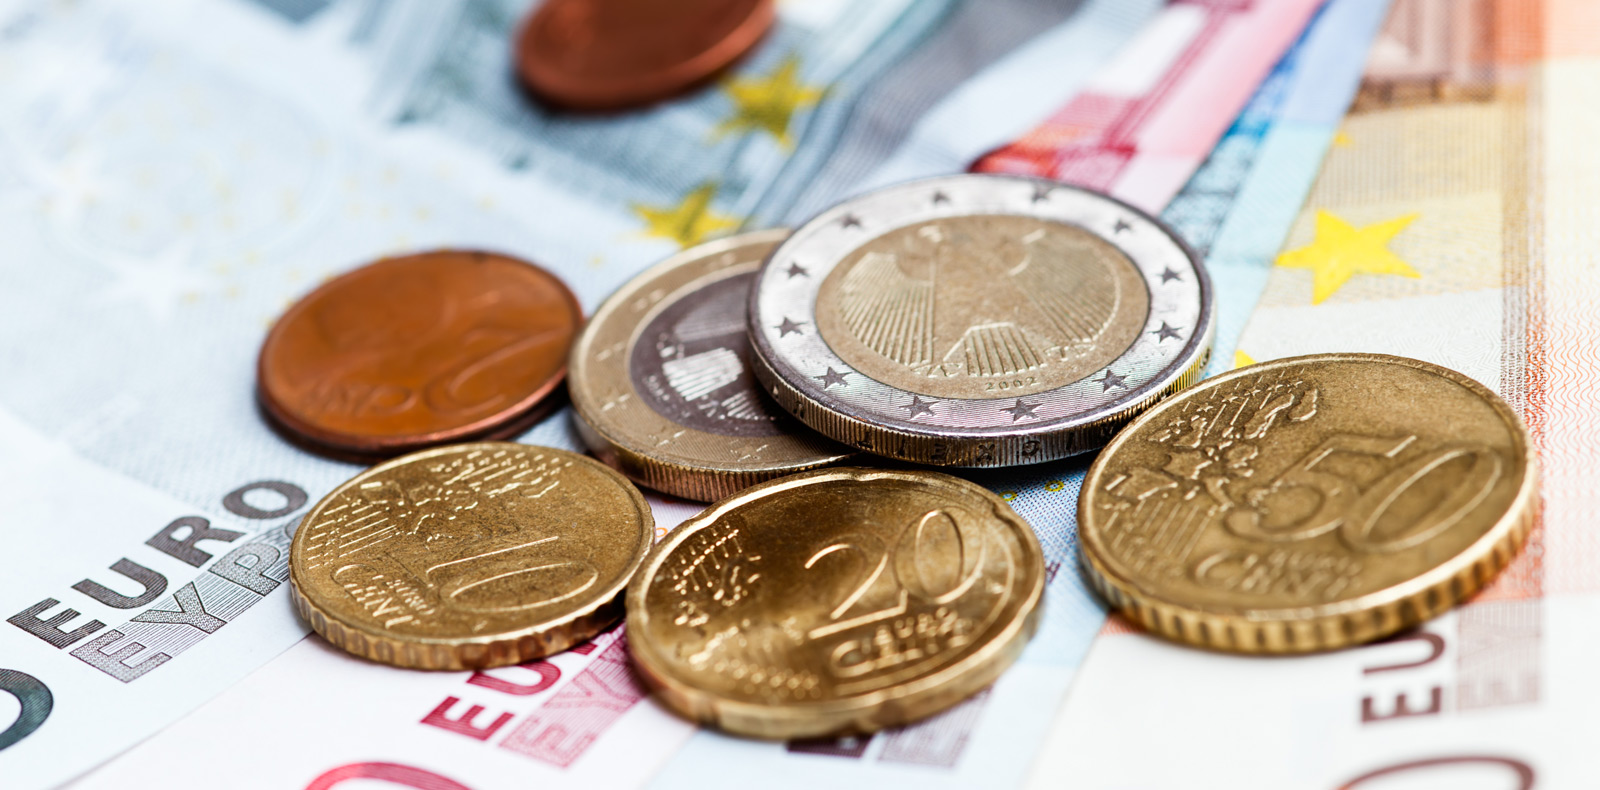 EUR value falls as the European Central Bank prepares for further fiscal tightening